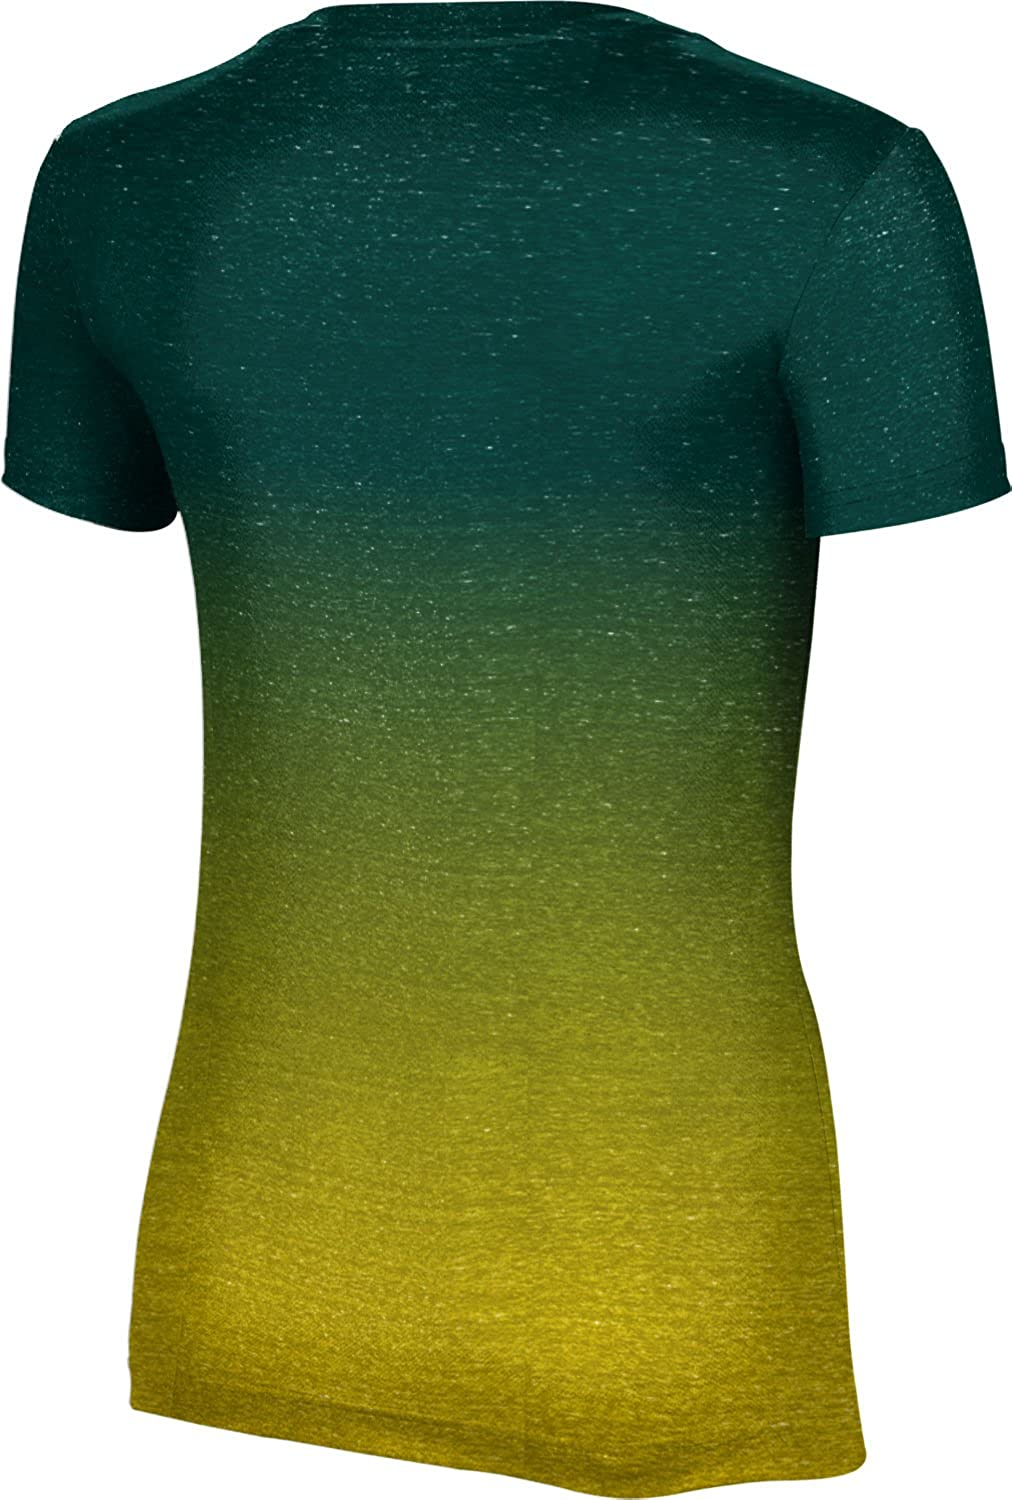 ProSphere Clarkson University Girls Performance T-Shirt Ombre